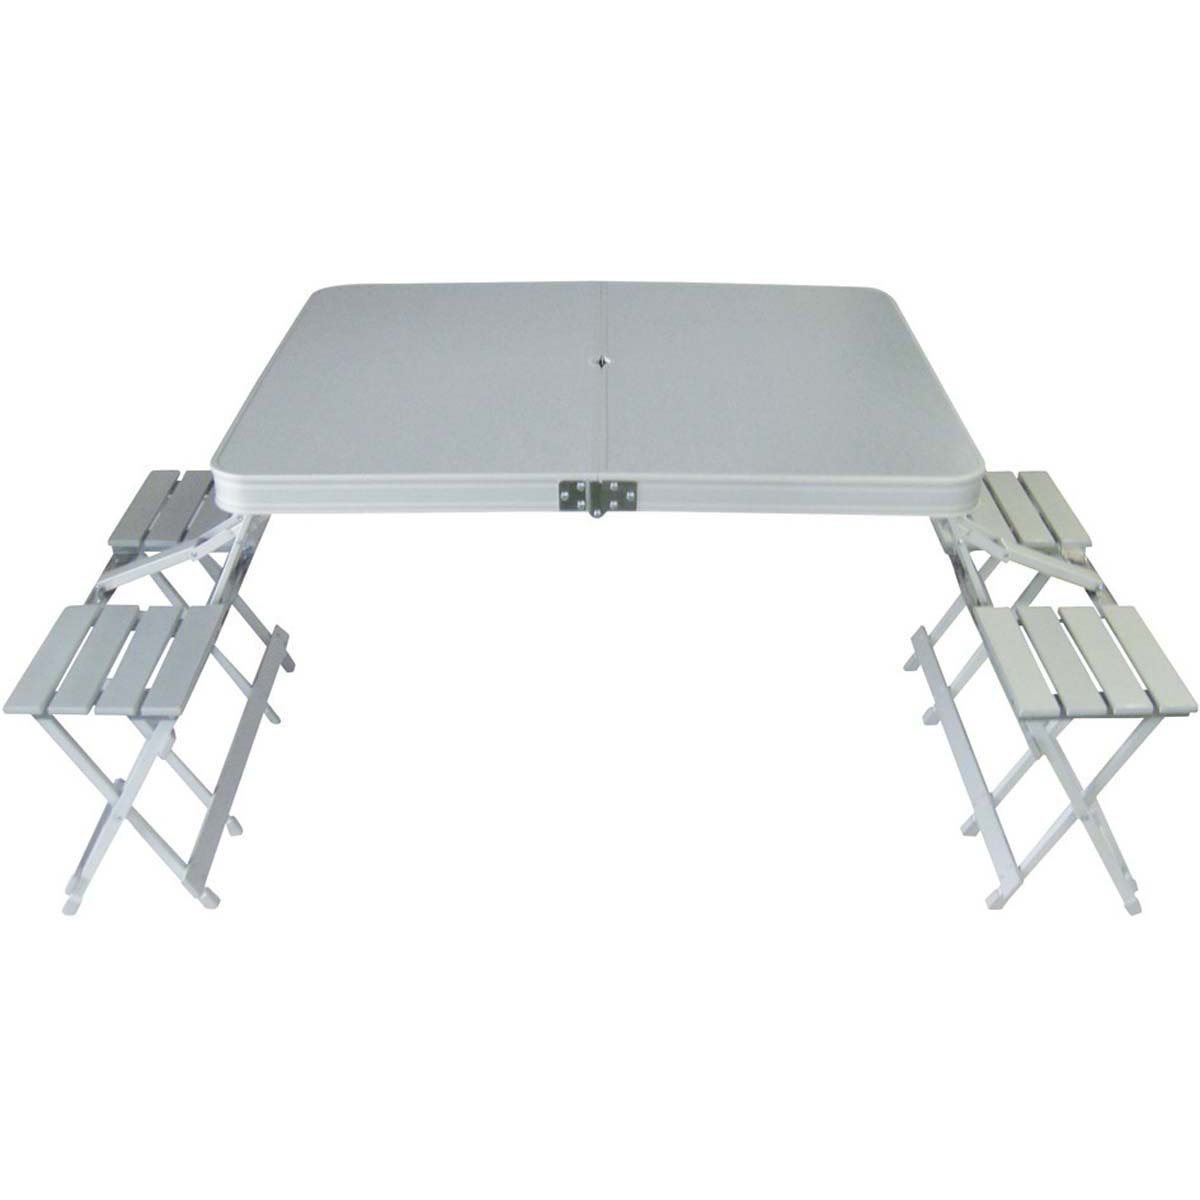 10 Ft Folding Table | 8ft Folding Table Costco | Costco Folding Tables